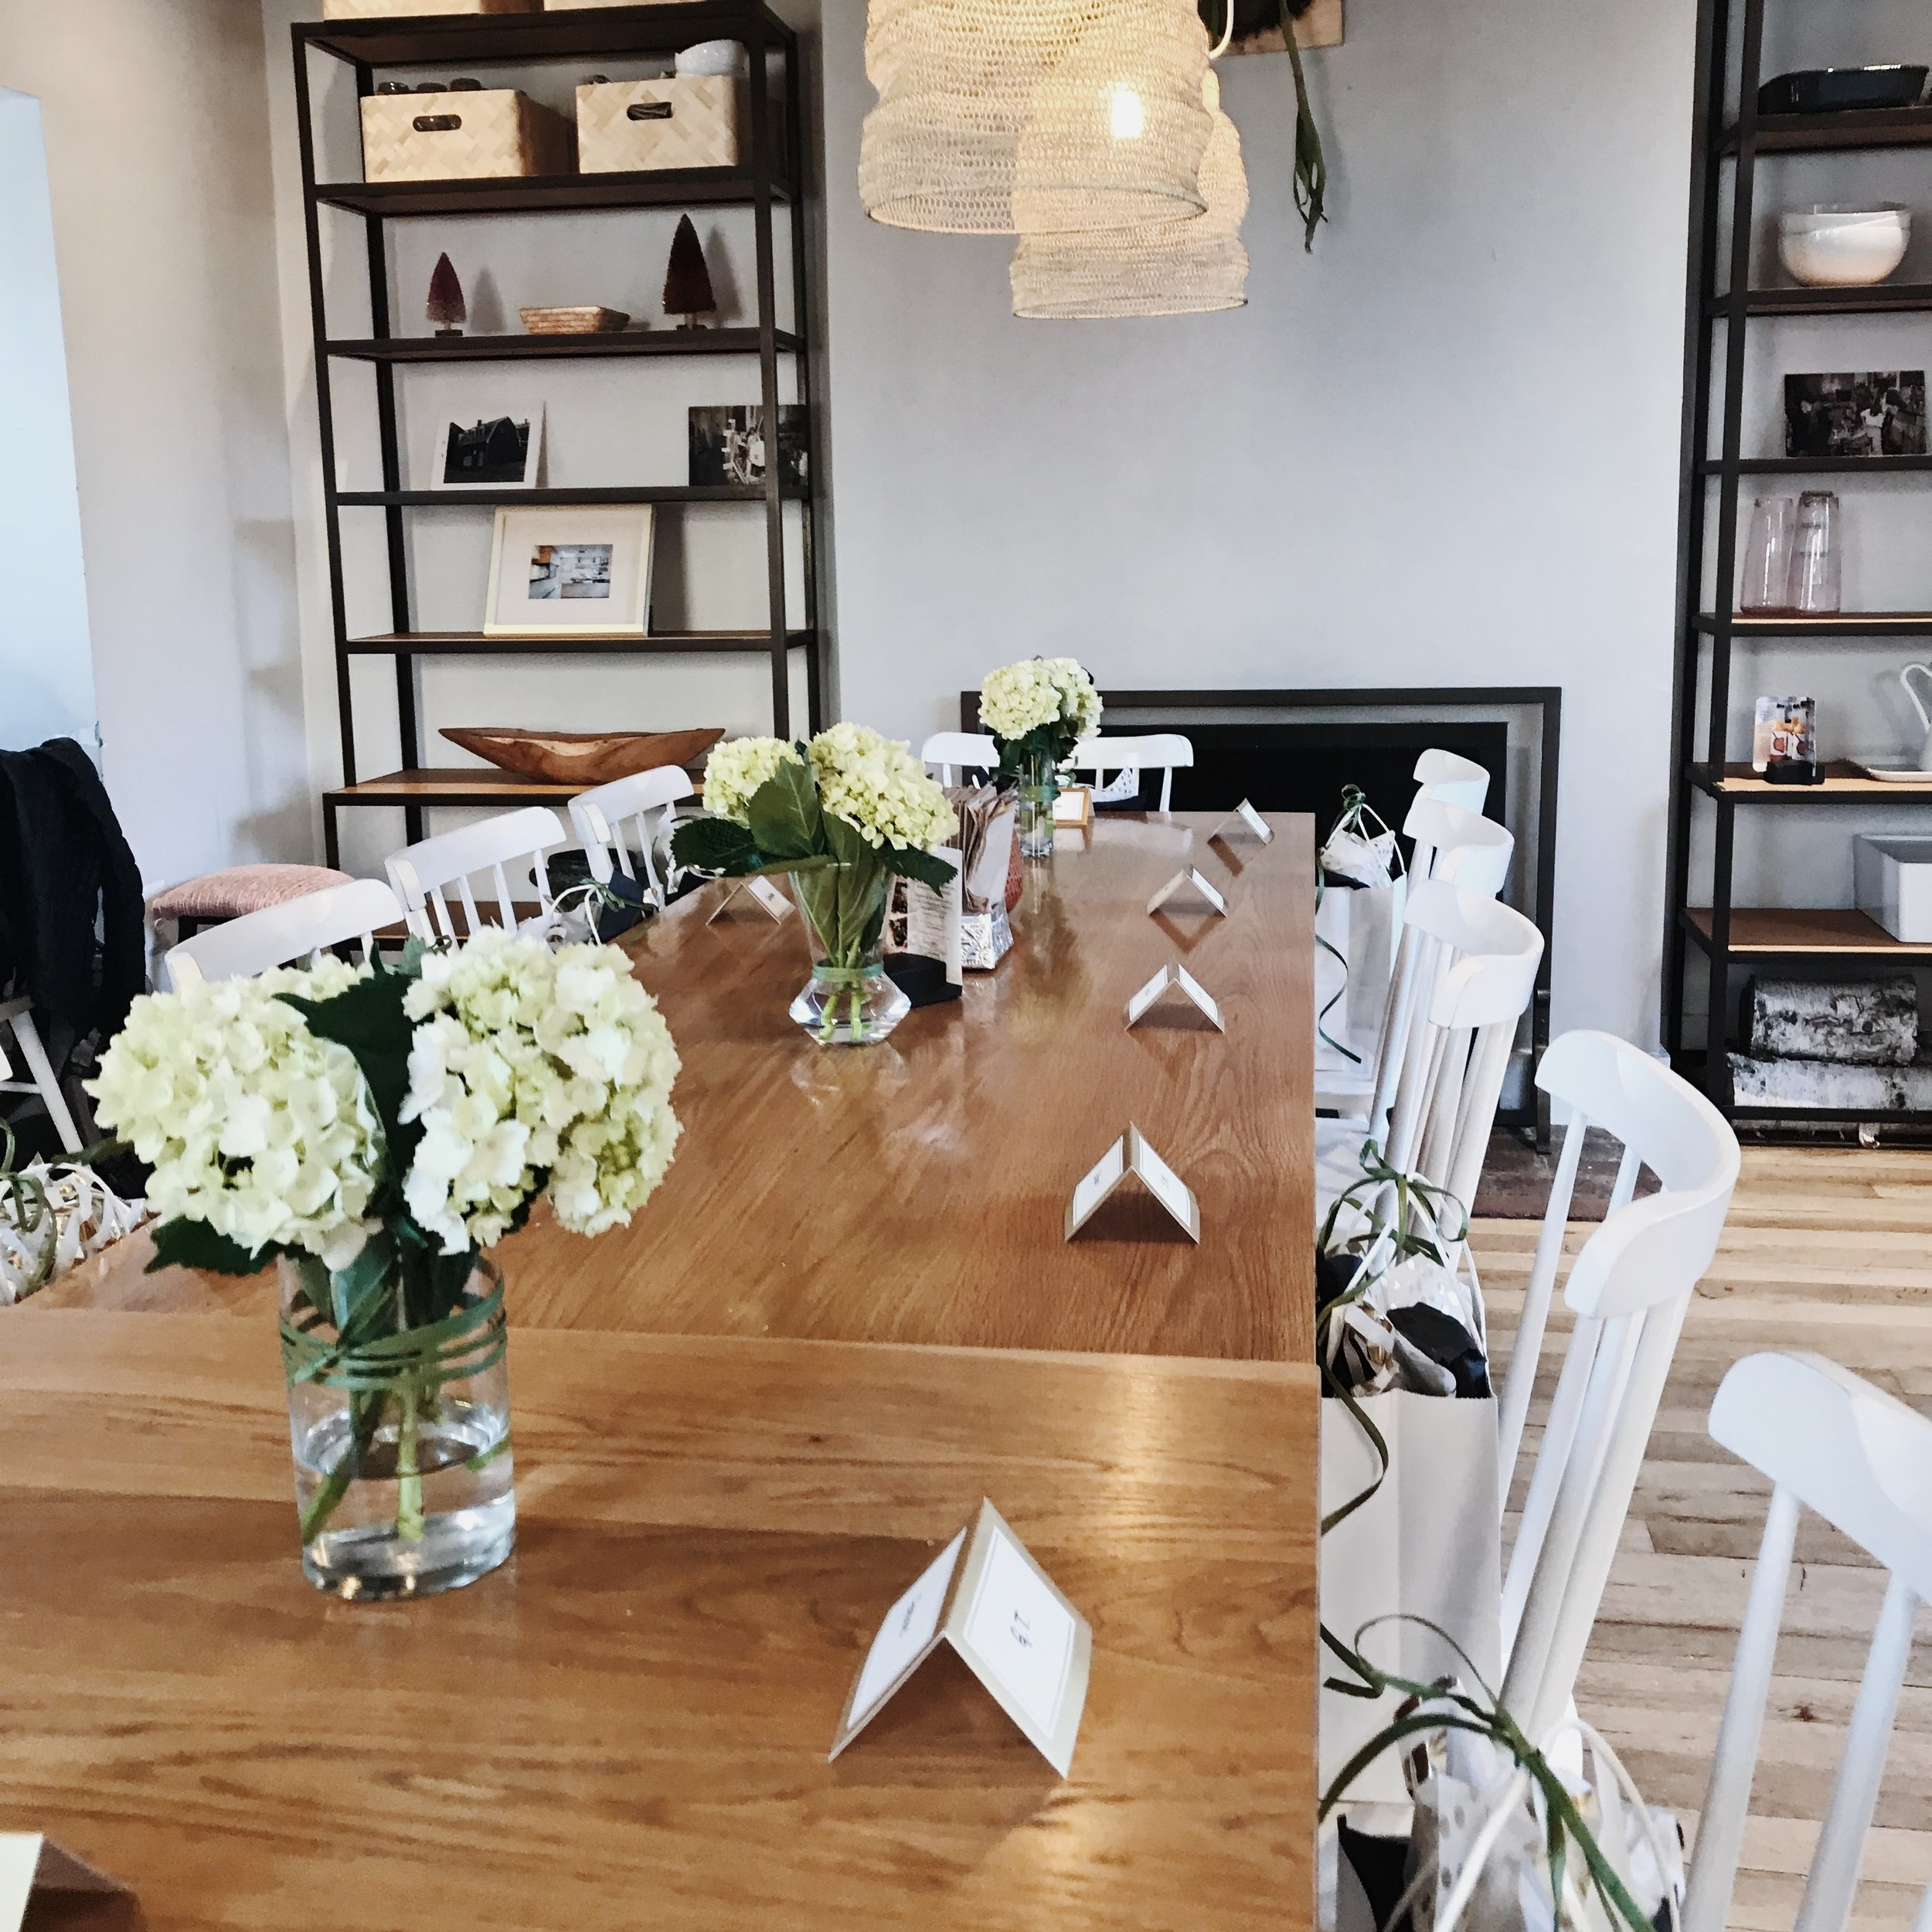 Eco-Dinner:Mimi Miller WomenswearxArt of the Journey - chaia, march 2018